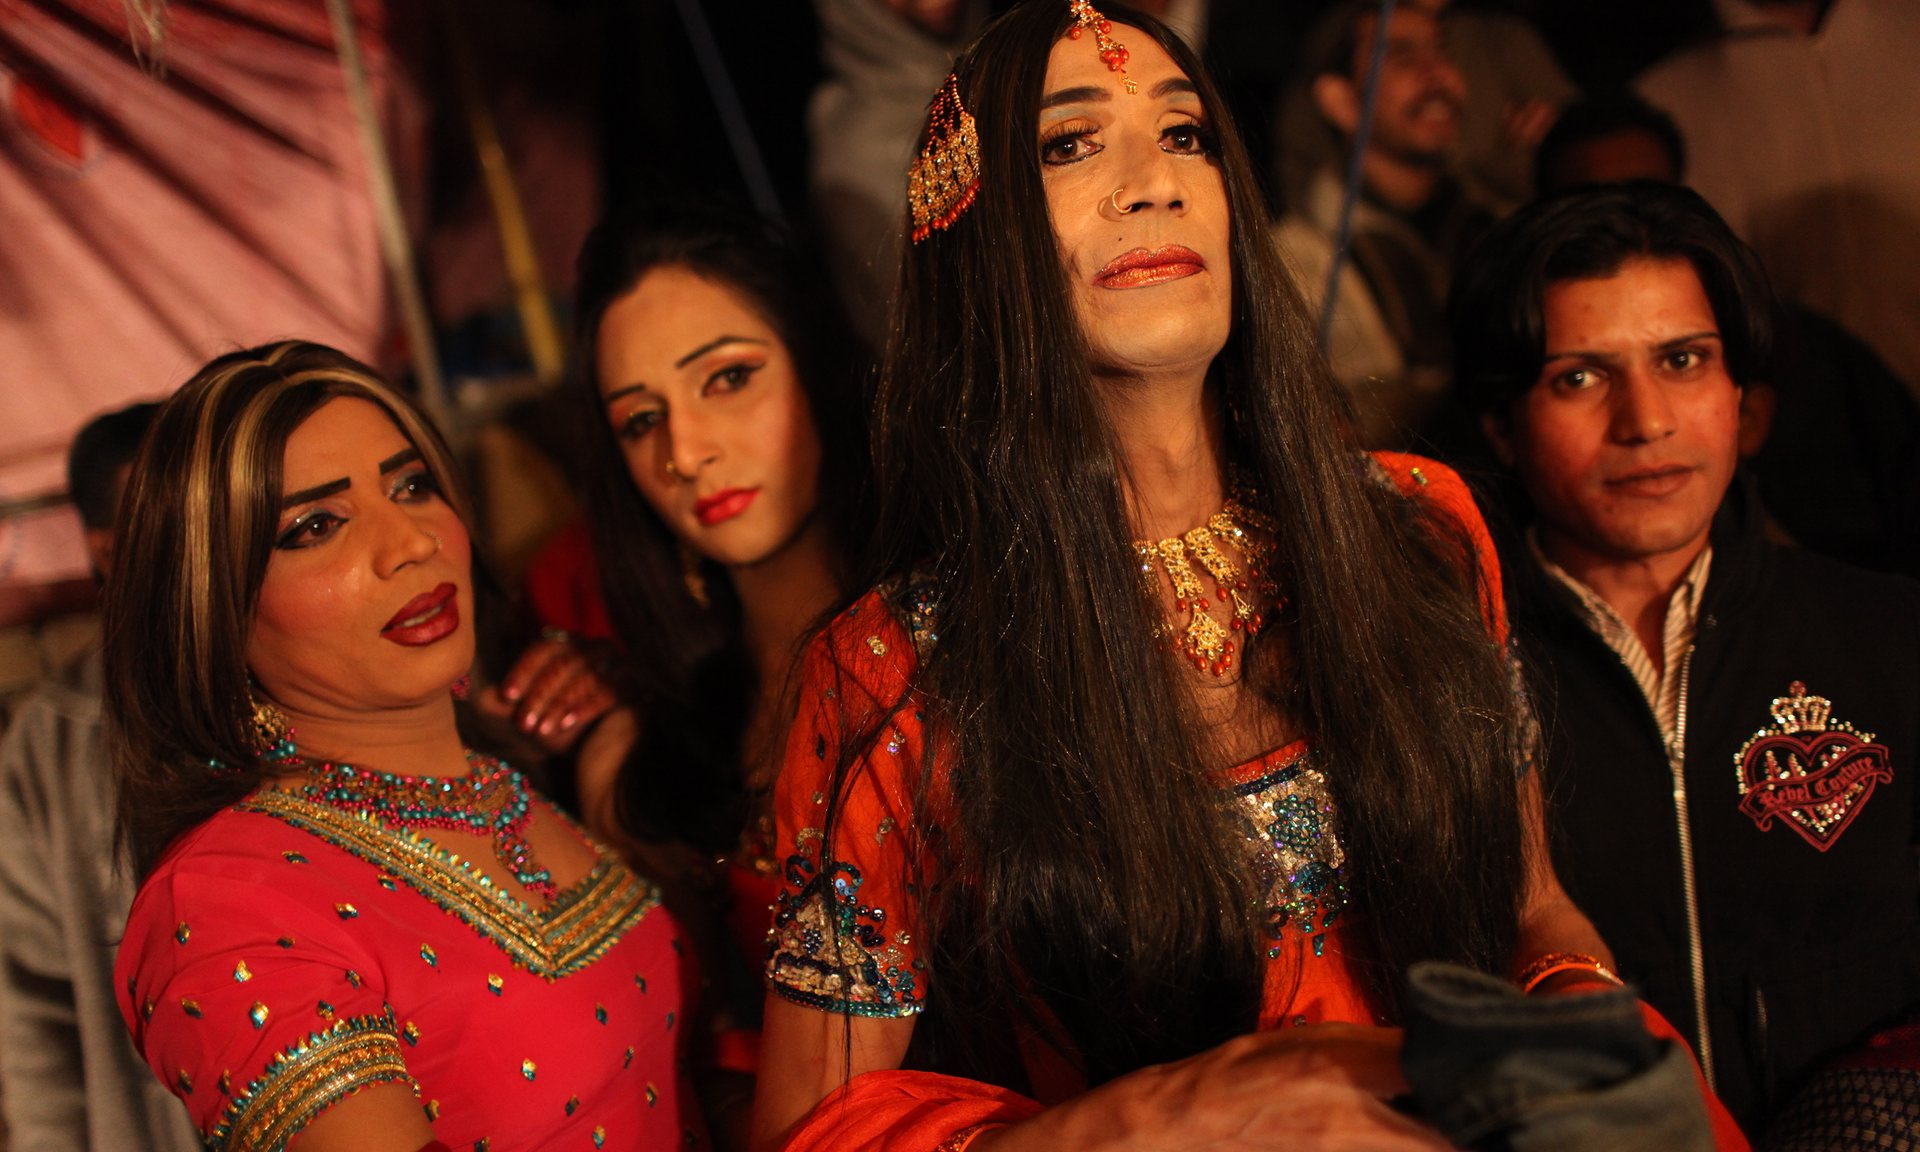 'I wasn't made to be raped and ridiculed' – trans woman makes a stand in Pakistan